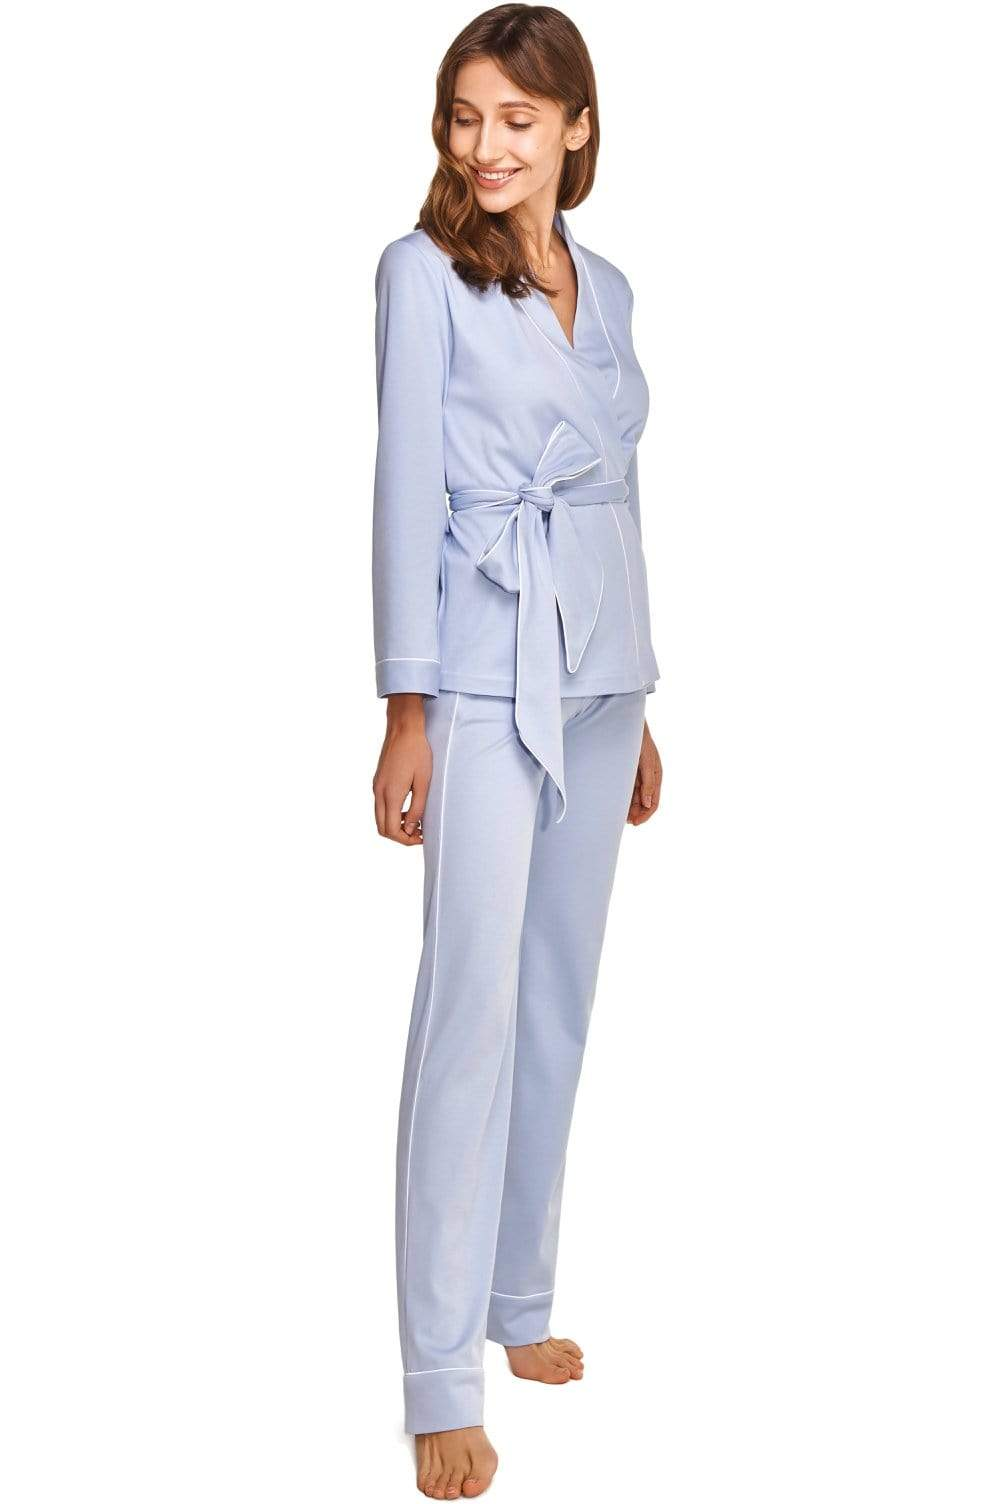 Slow Nature® Essentials Sleep & Loungewear Women's 3-piece Loungewear set in Organic Pima Cotton. sustainable fashion ethical fashion